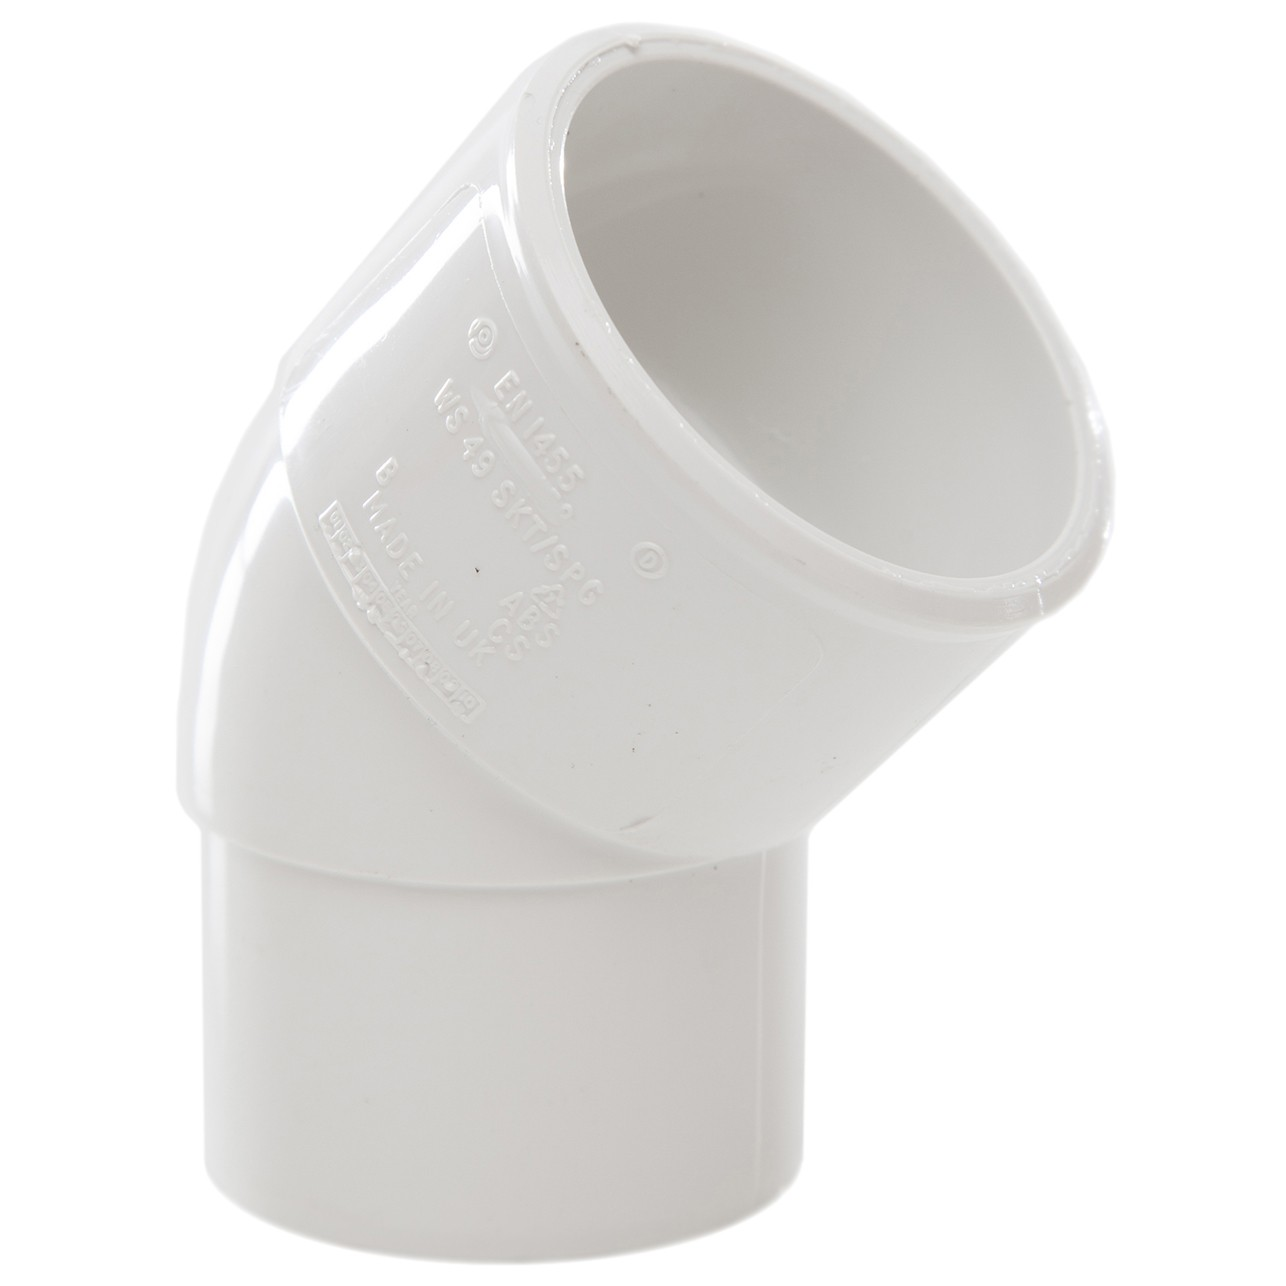 Polypipe 40mm Solvent Weld Waste 45 Degree Spigot Bend - White